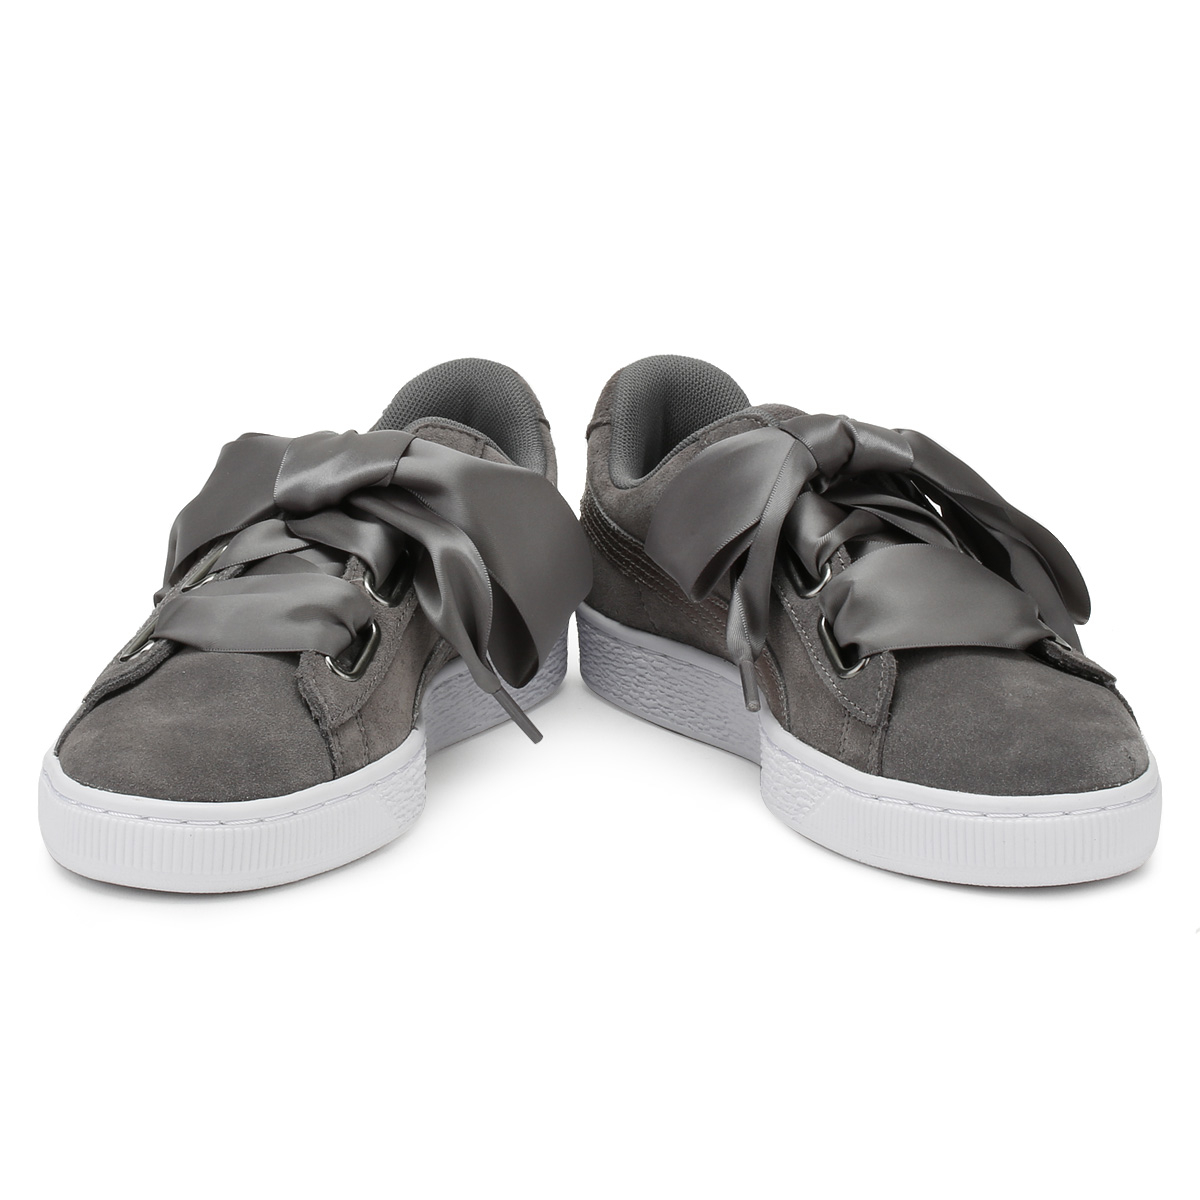 PUMA Womens Trainers Grey Pearl Heart Lunalux Suede Ladies Sport Casual  Shoes 07f85b250